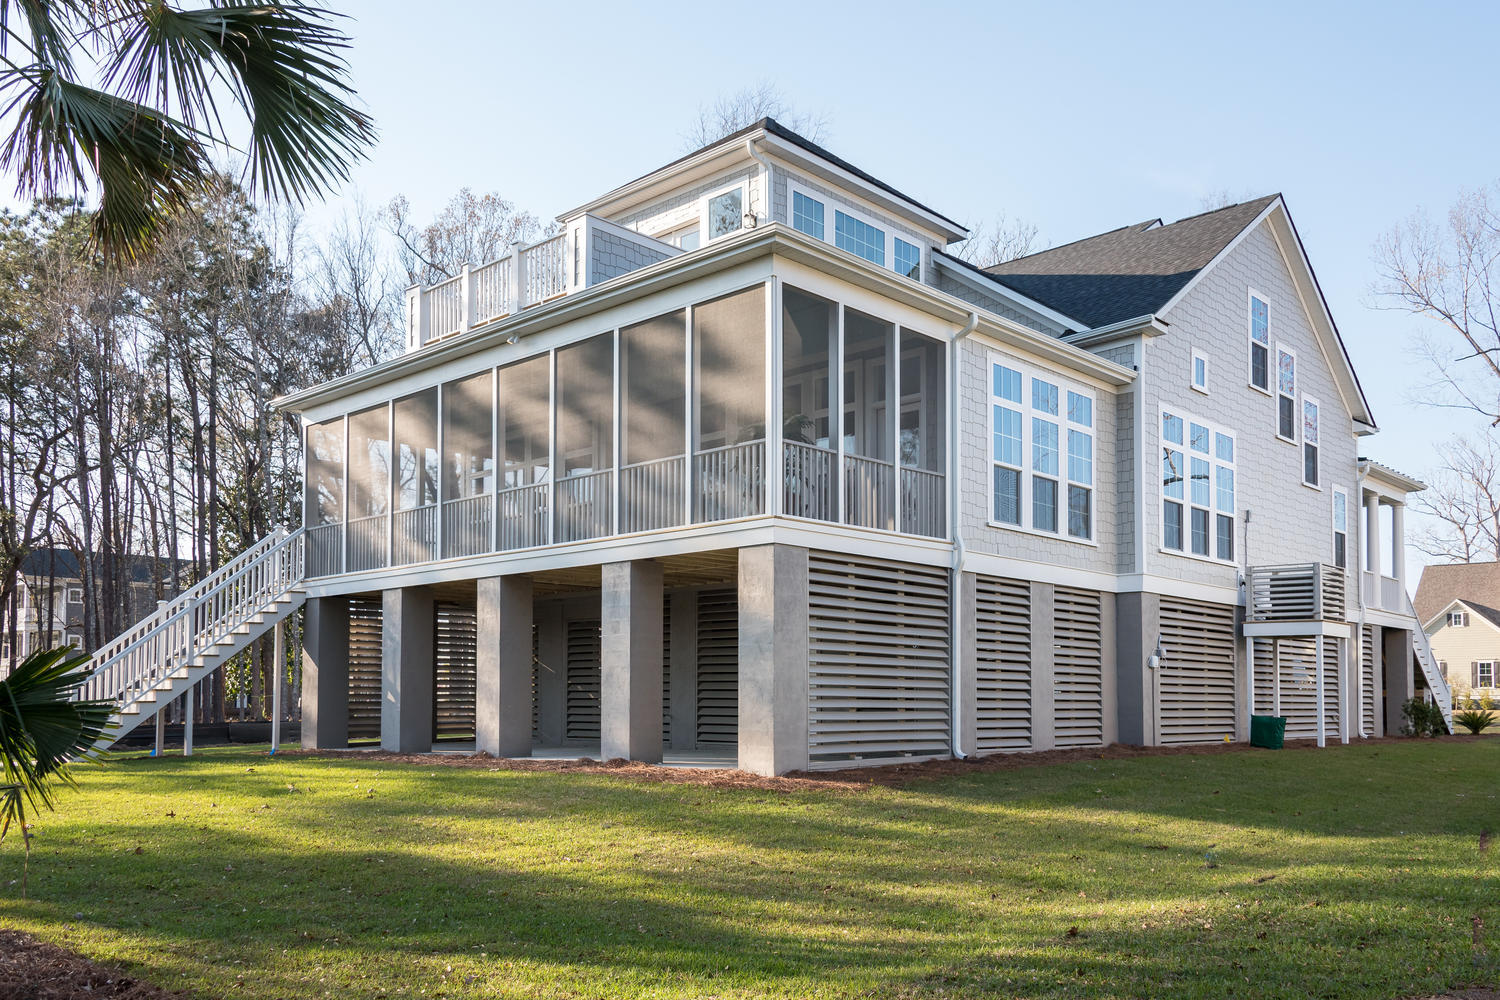 Dunes West Homes For Sale - 3000 Yachtsman, Mount Pleasant, SC - 45